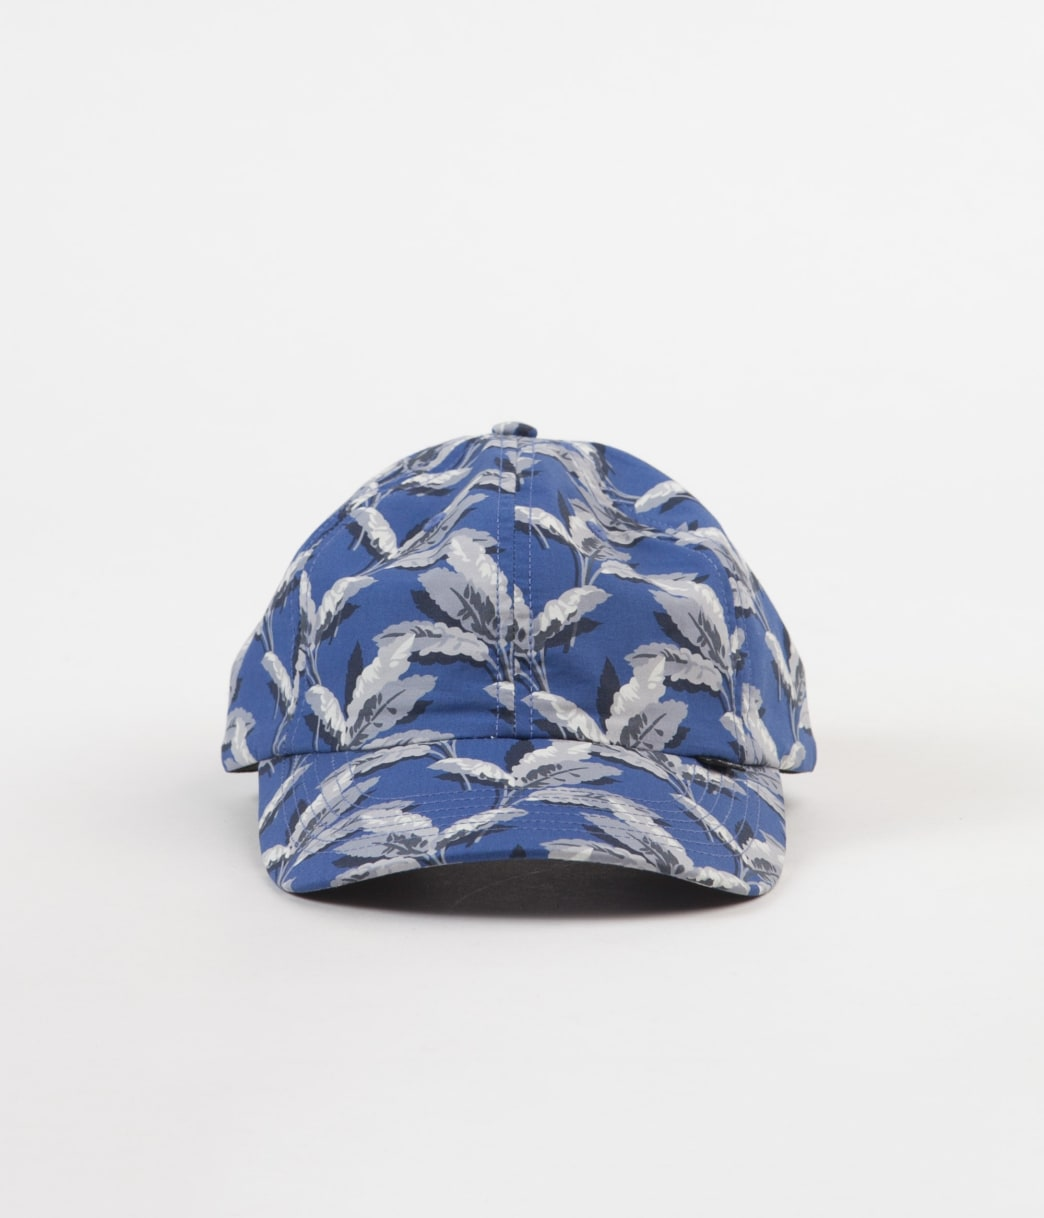 THE QUIET LIFE PALM POLO HAT - BLUE   Baseball Cap by The Quiet Life 1